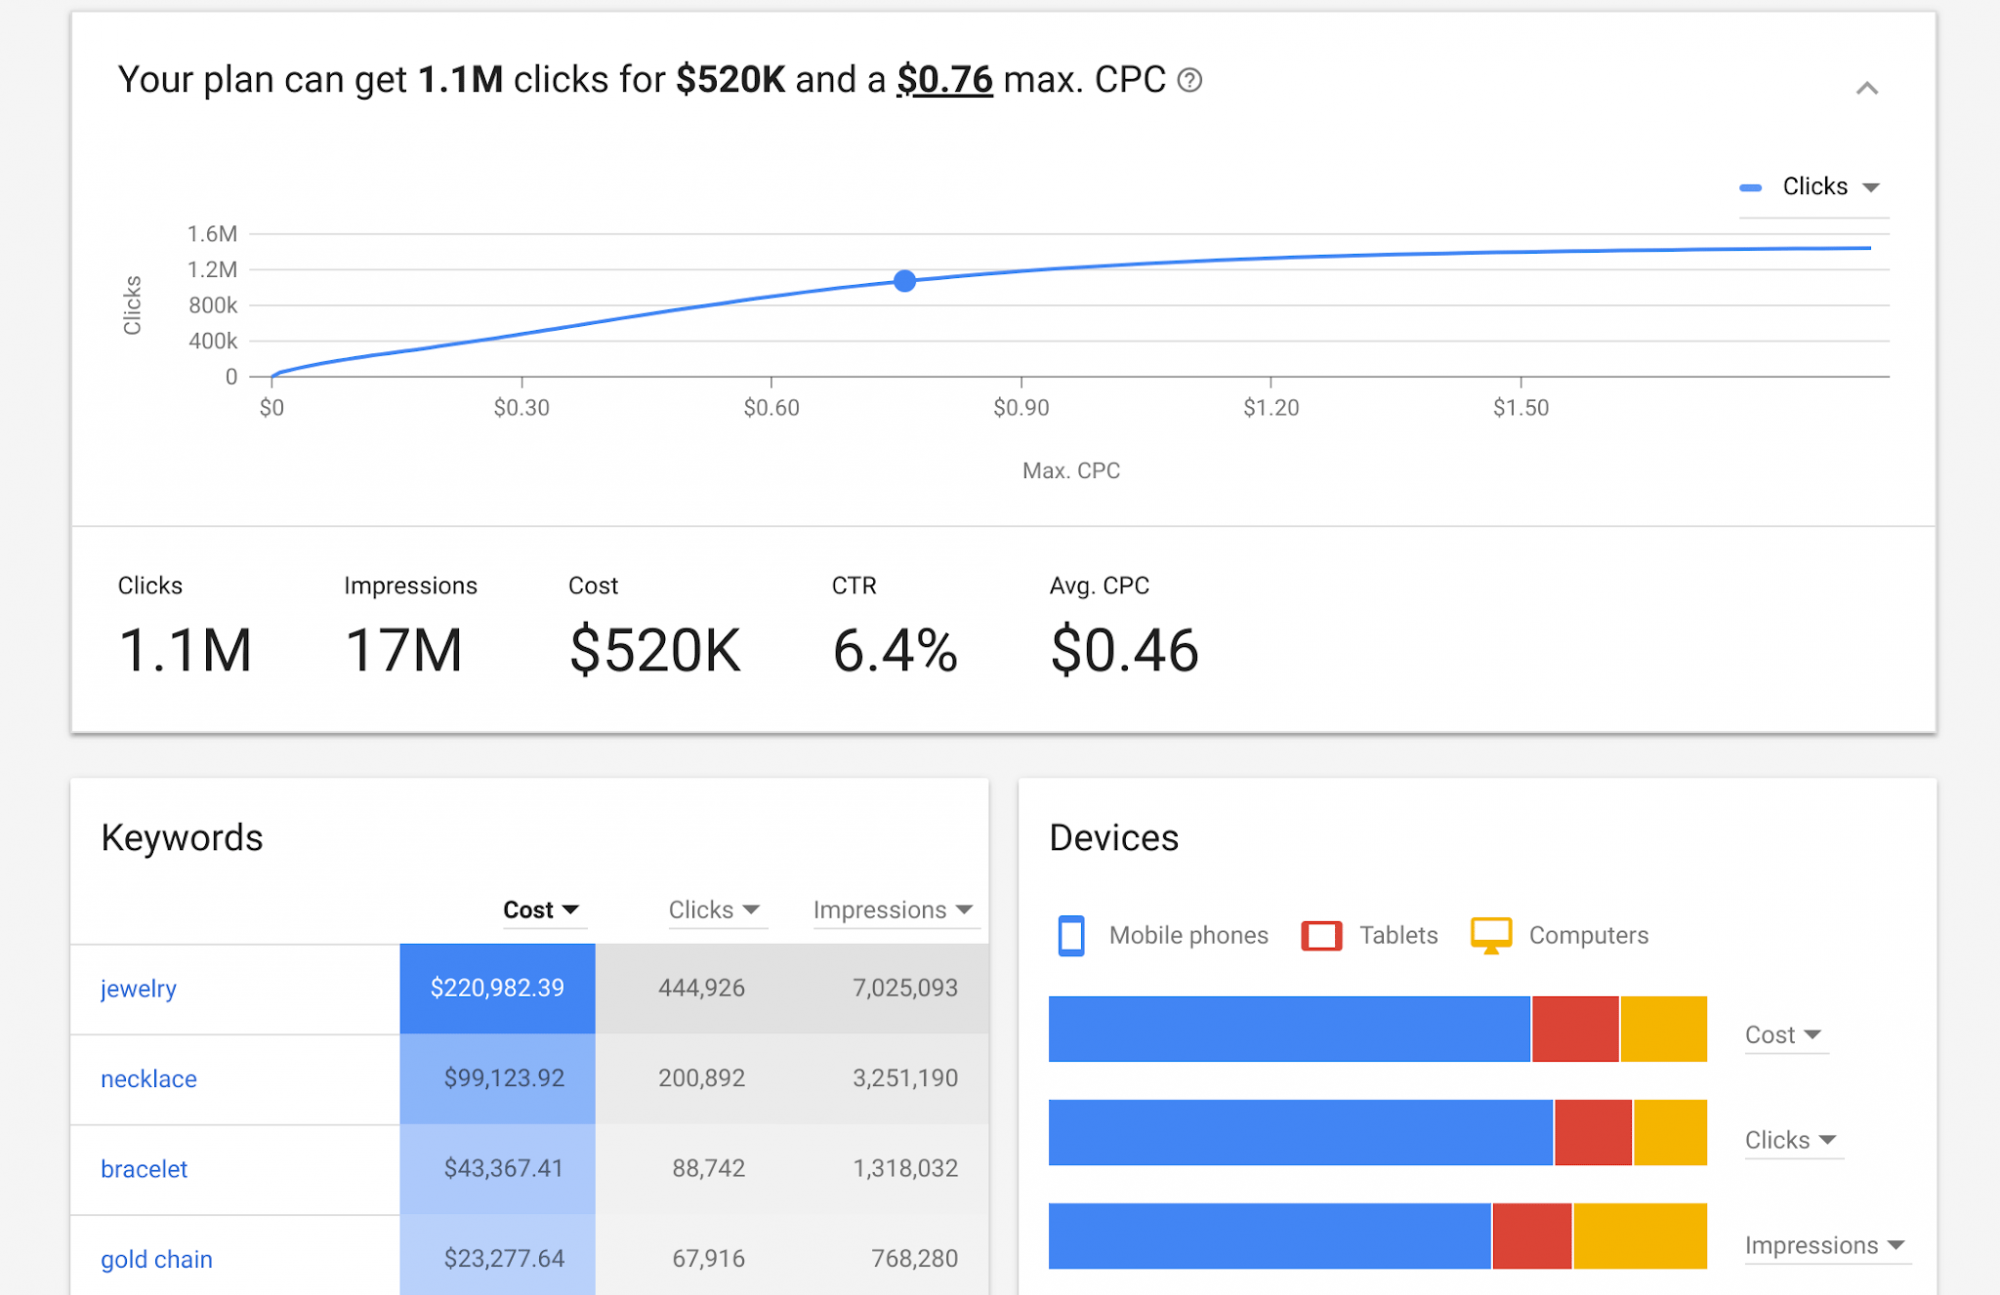 Keyword search volumes and ROI